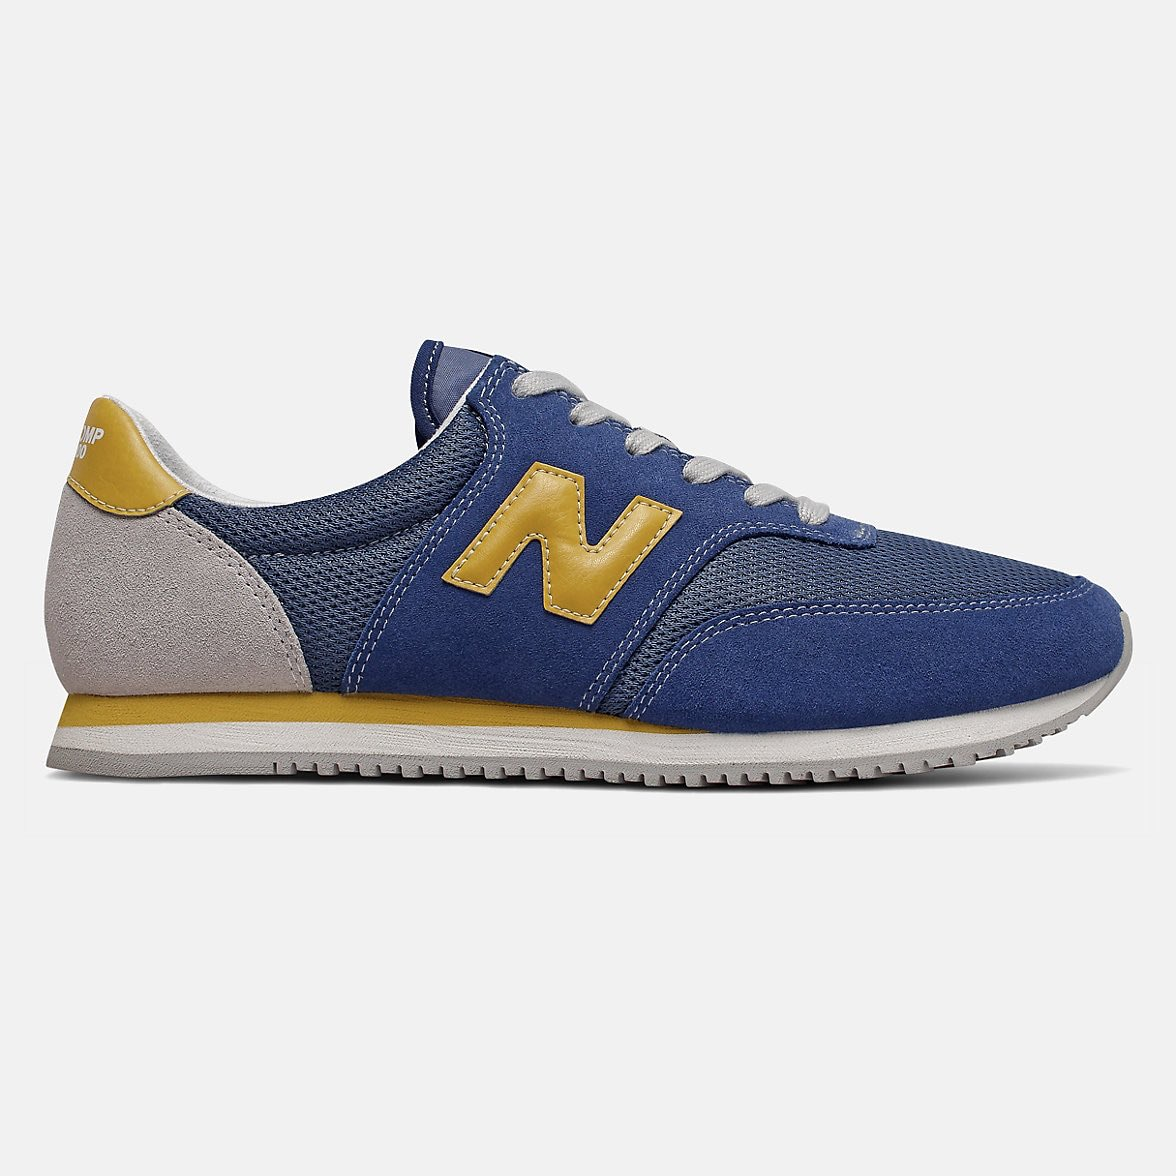 "Ad: Straight out of the archives - the New Balance Comp 100 is now ONLY £30!  Code ""NBEXTRA20"" here => https://t.co/Cs3EiE9aNZ  Three styles to choose from  UK3.5-12.5 (RRP£75) https://t.co/ZXq3Xp4qy8"